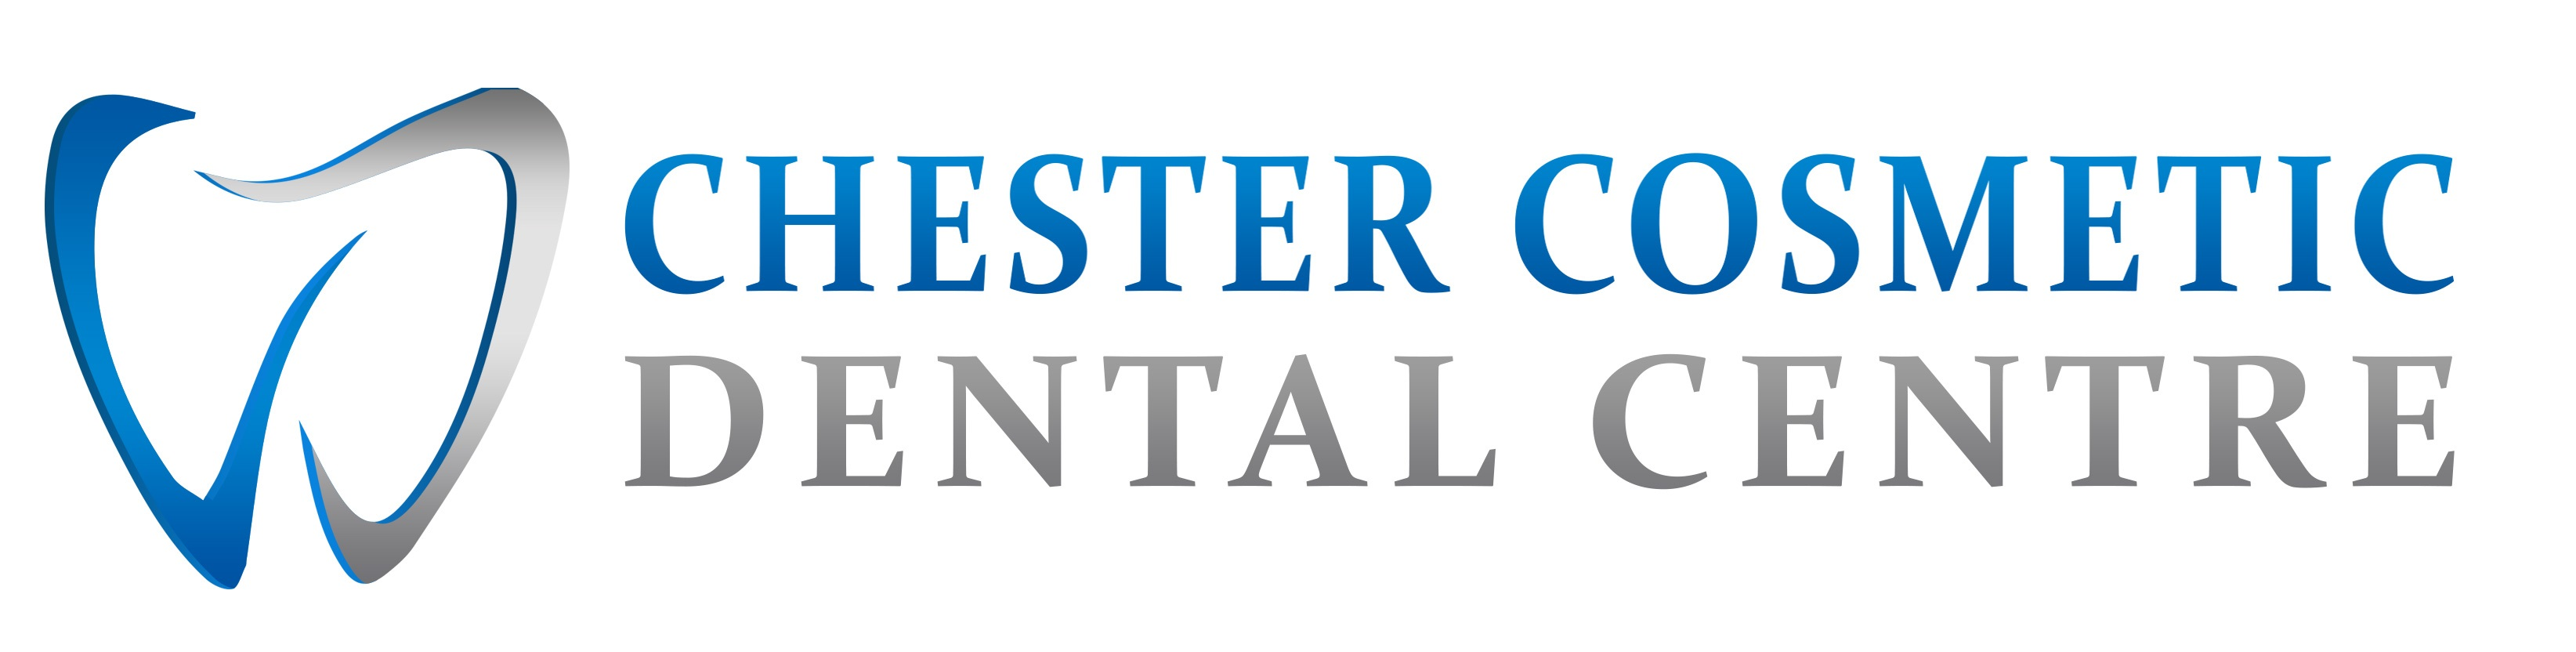 Chester Cosmetic Dental Centre